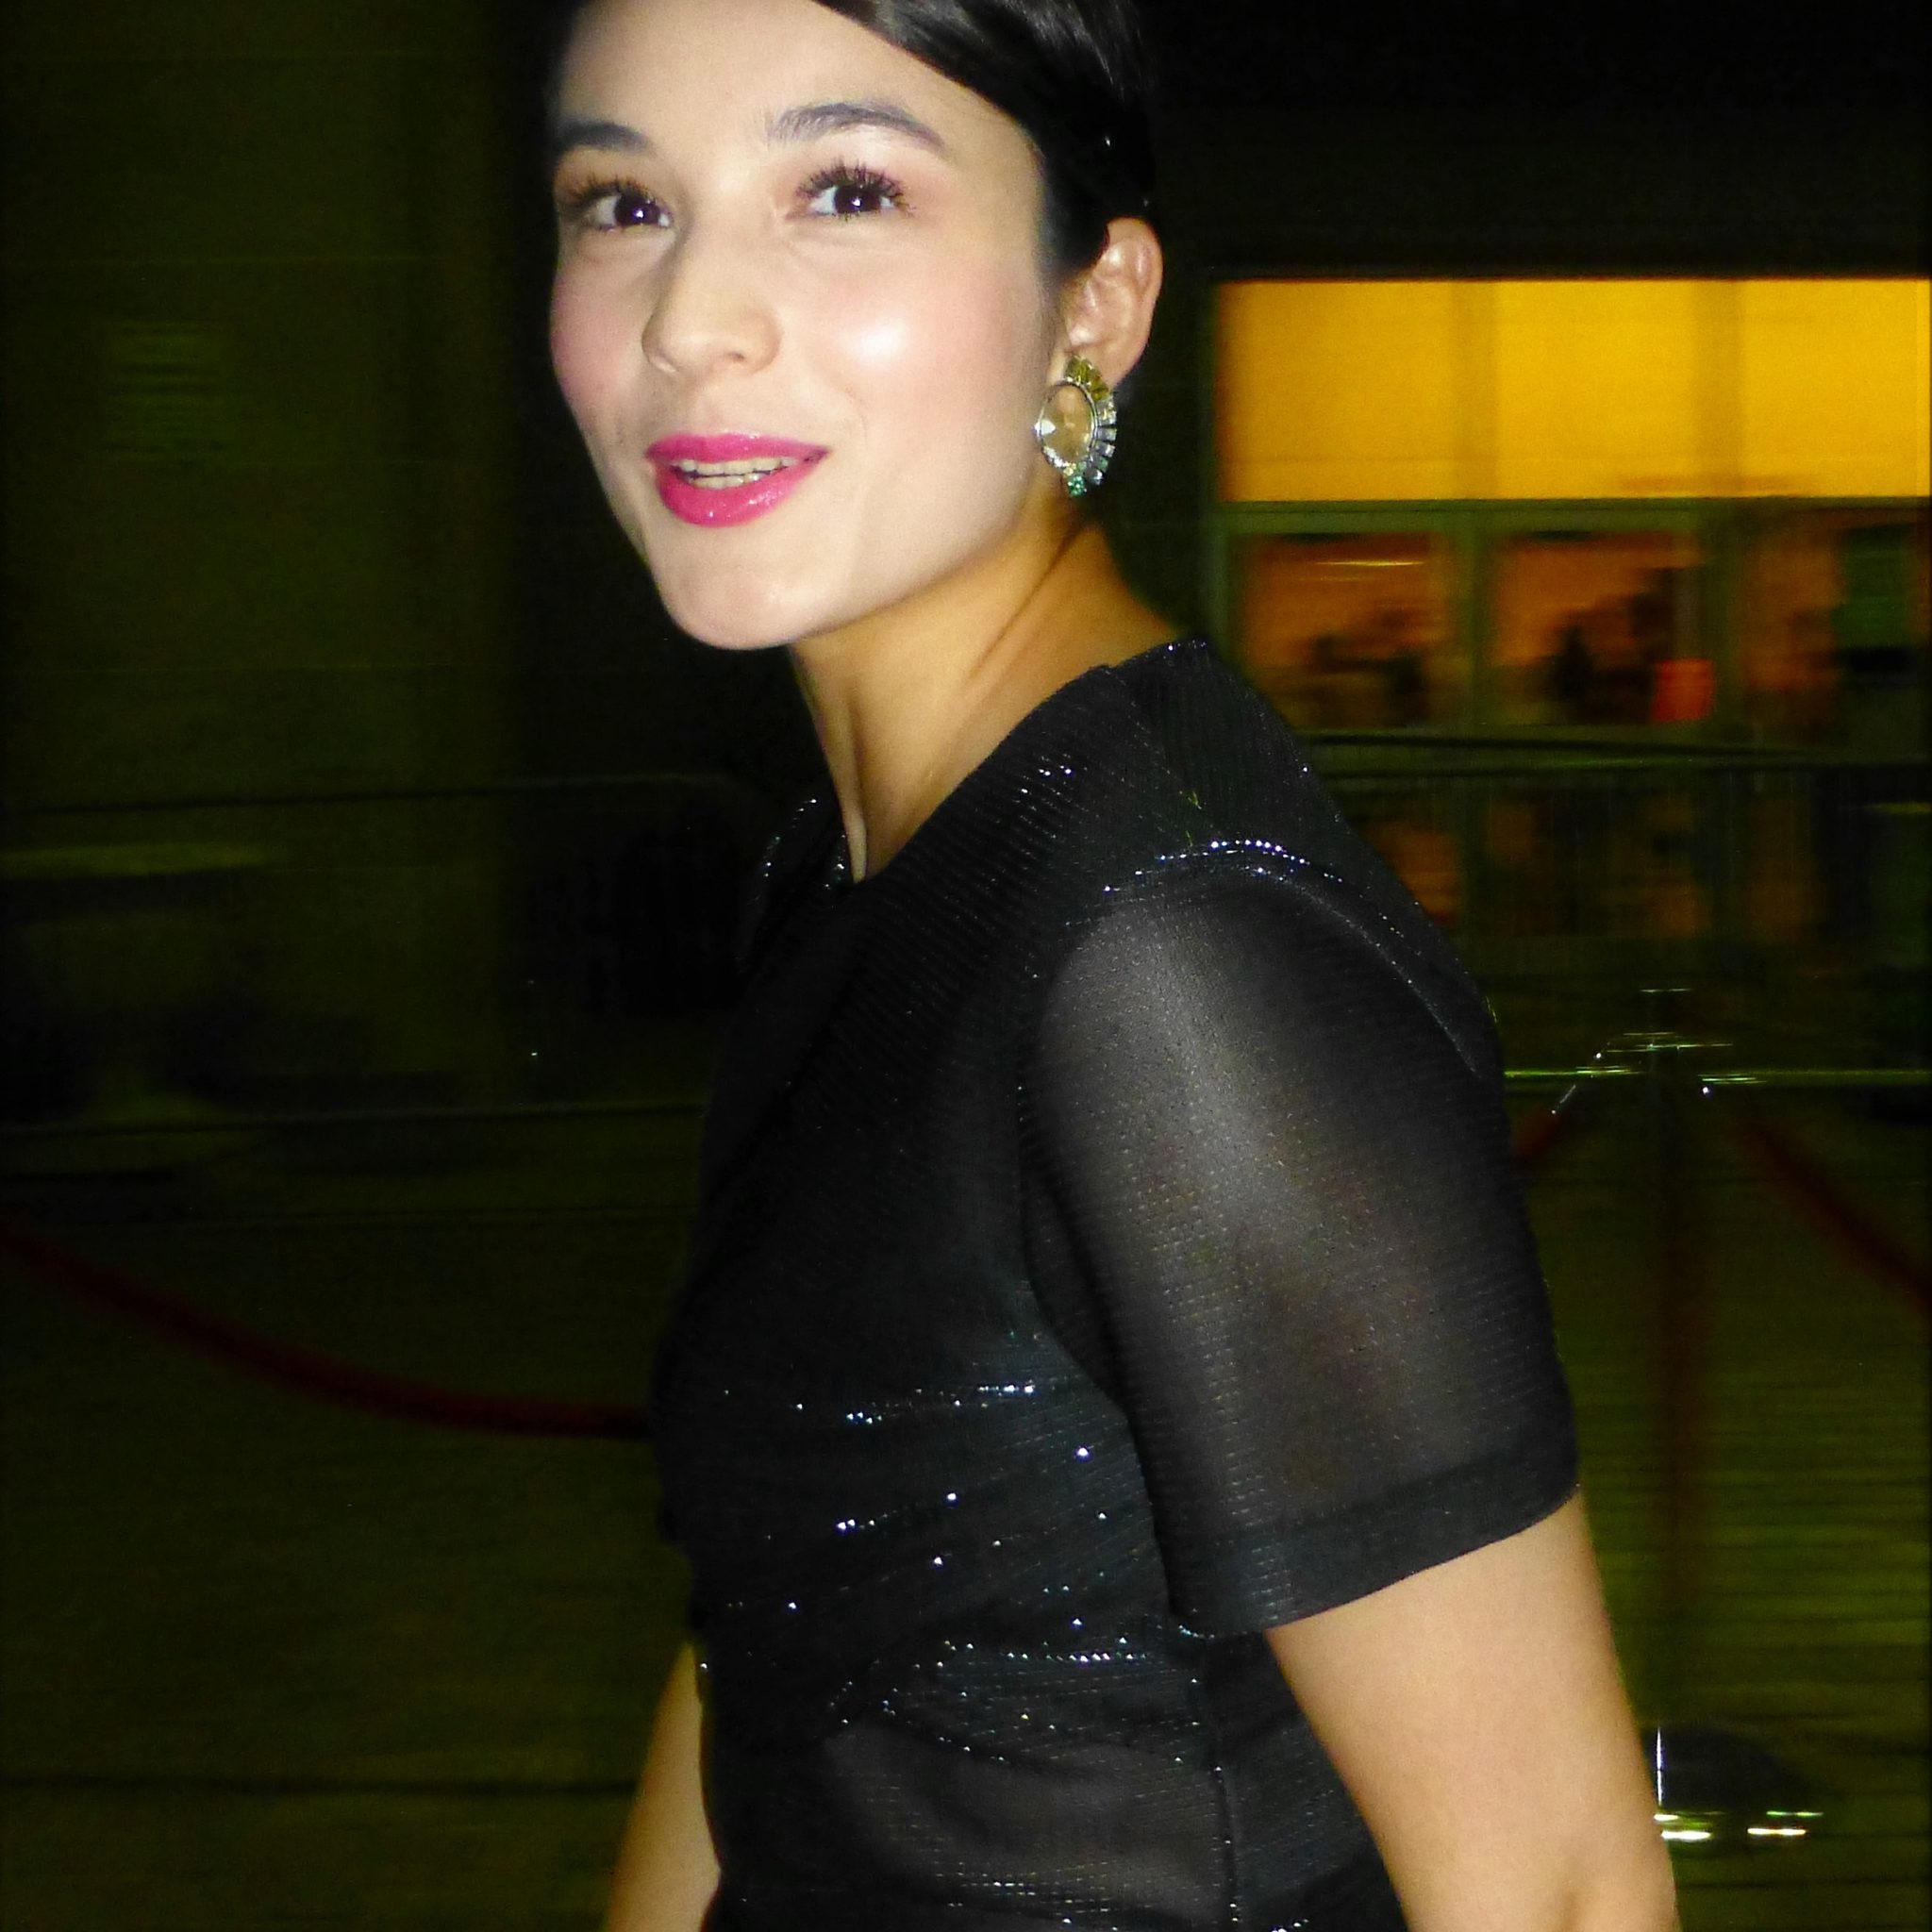 Chelsea Islan At The Premiere Of Heads At Tiff Jpg